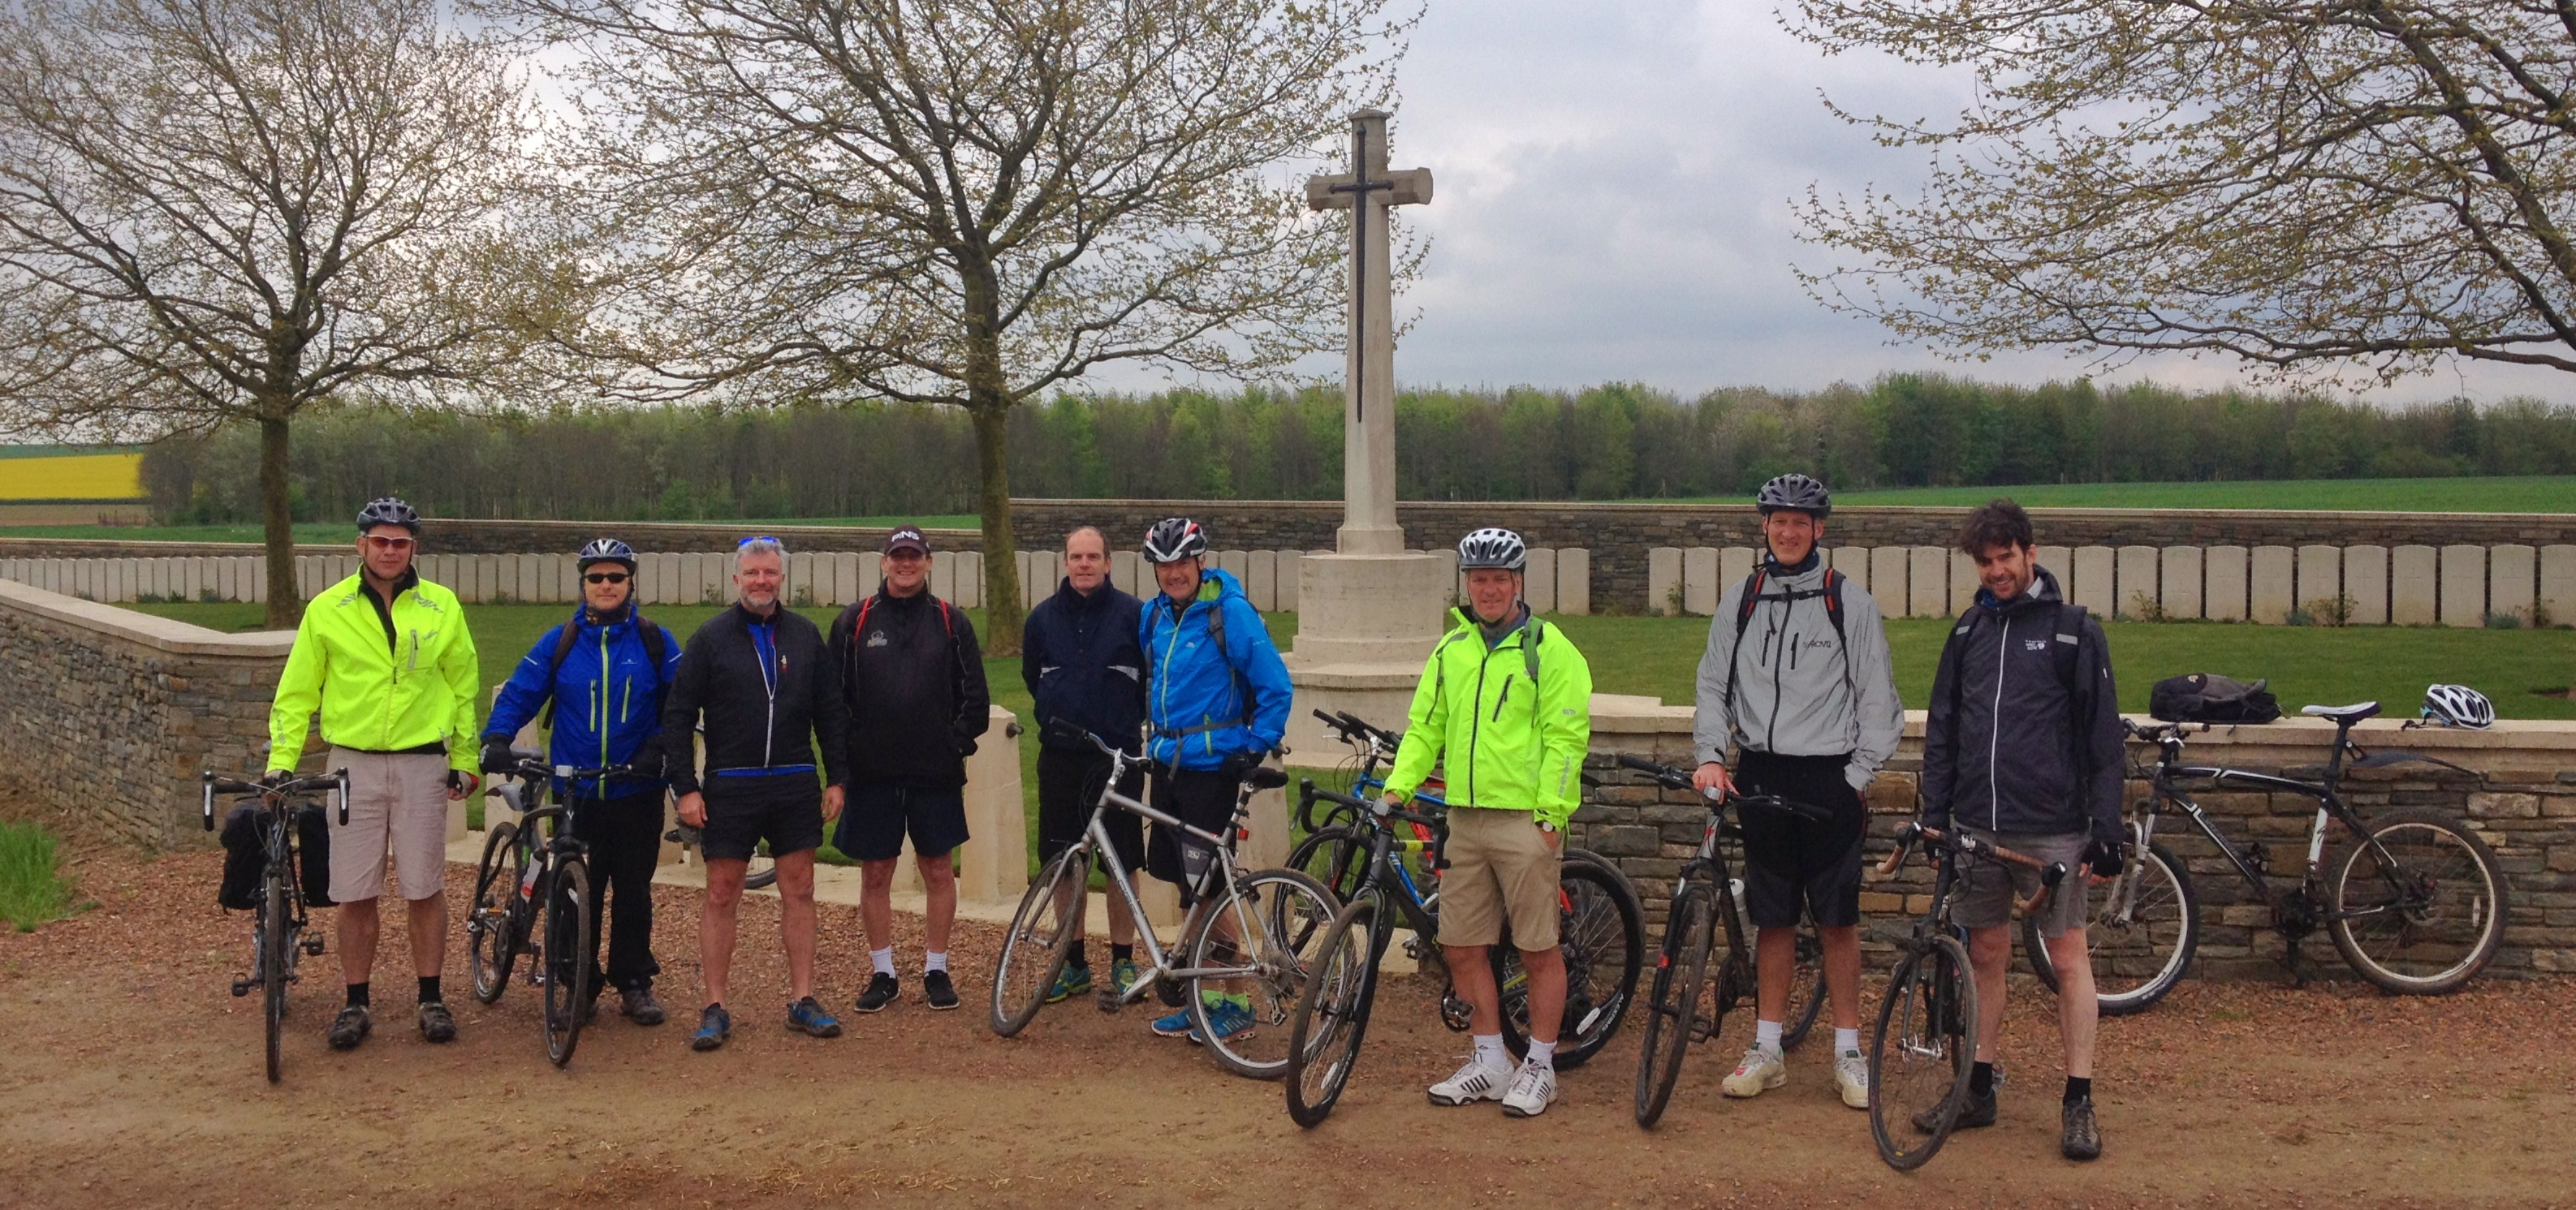 Cycling tour at Bootham Cemetery, Heninel